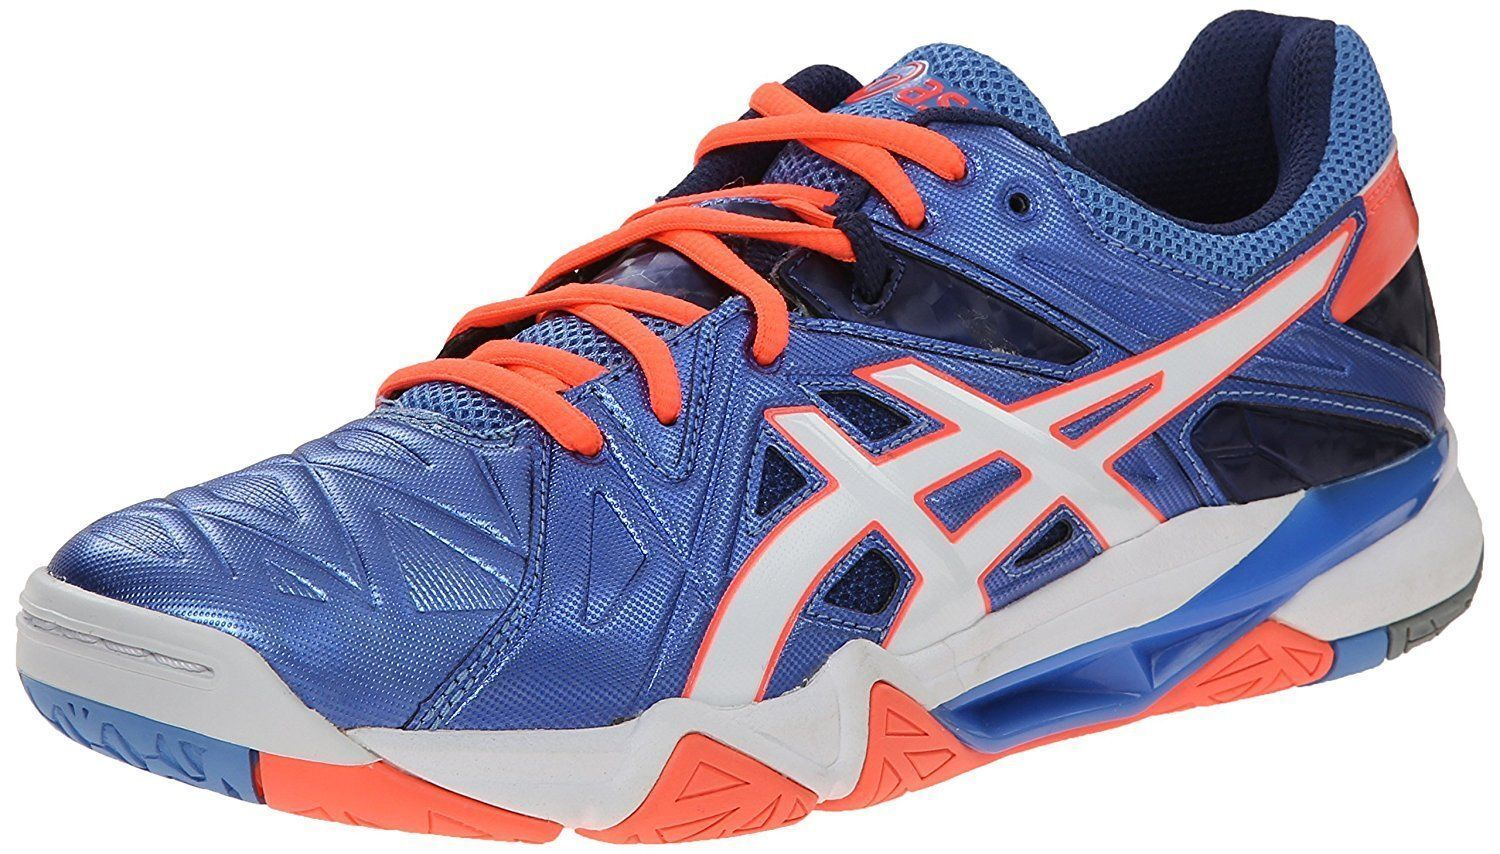 ASICS Gel Cyber Sensei 6 Women's Volleyball Sneakers 7.5 Price reduction Special limited time